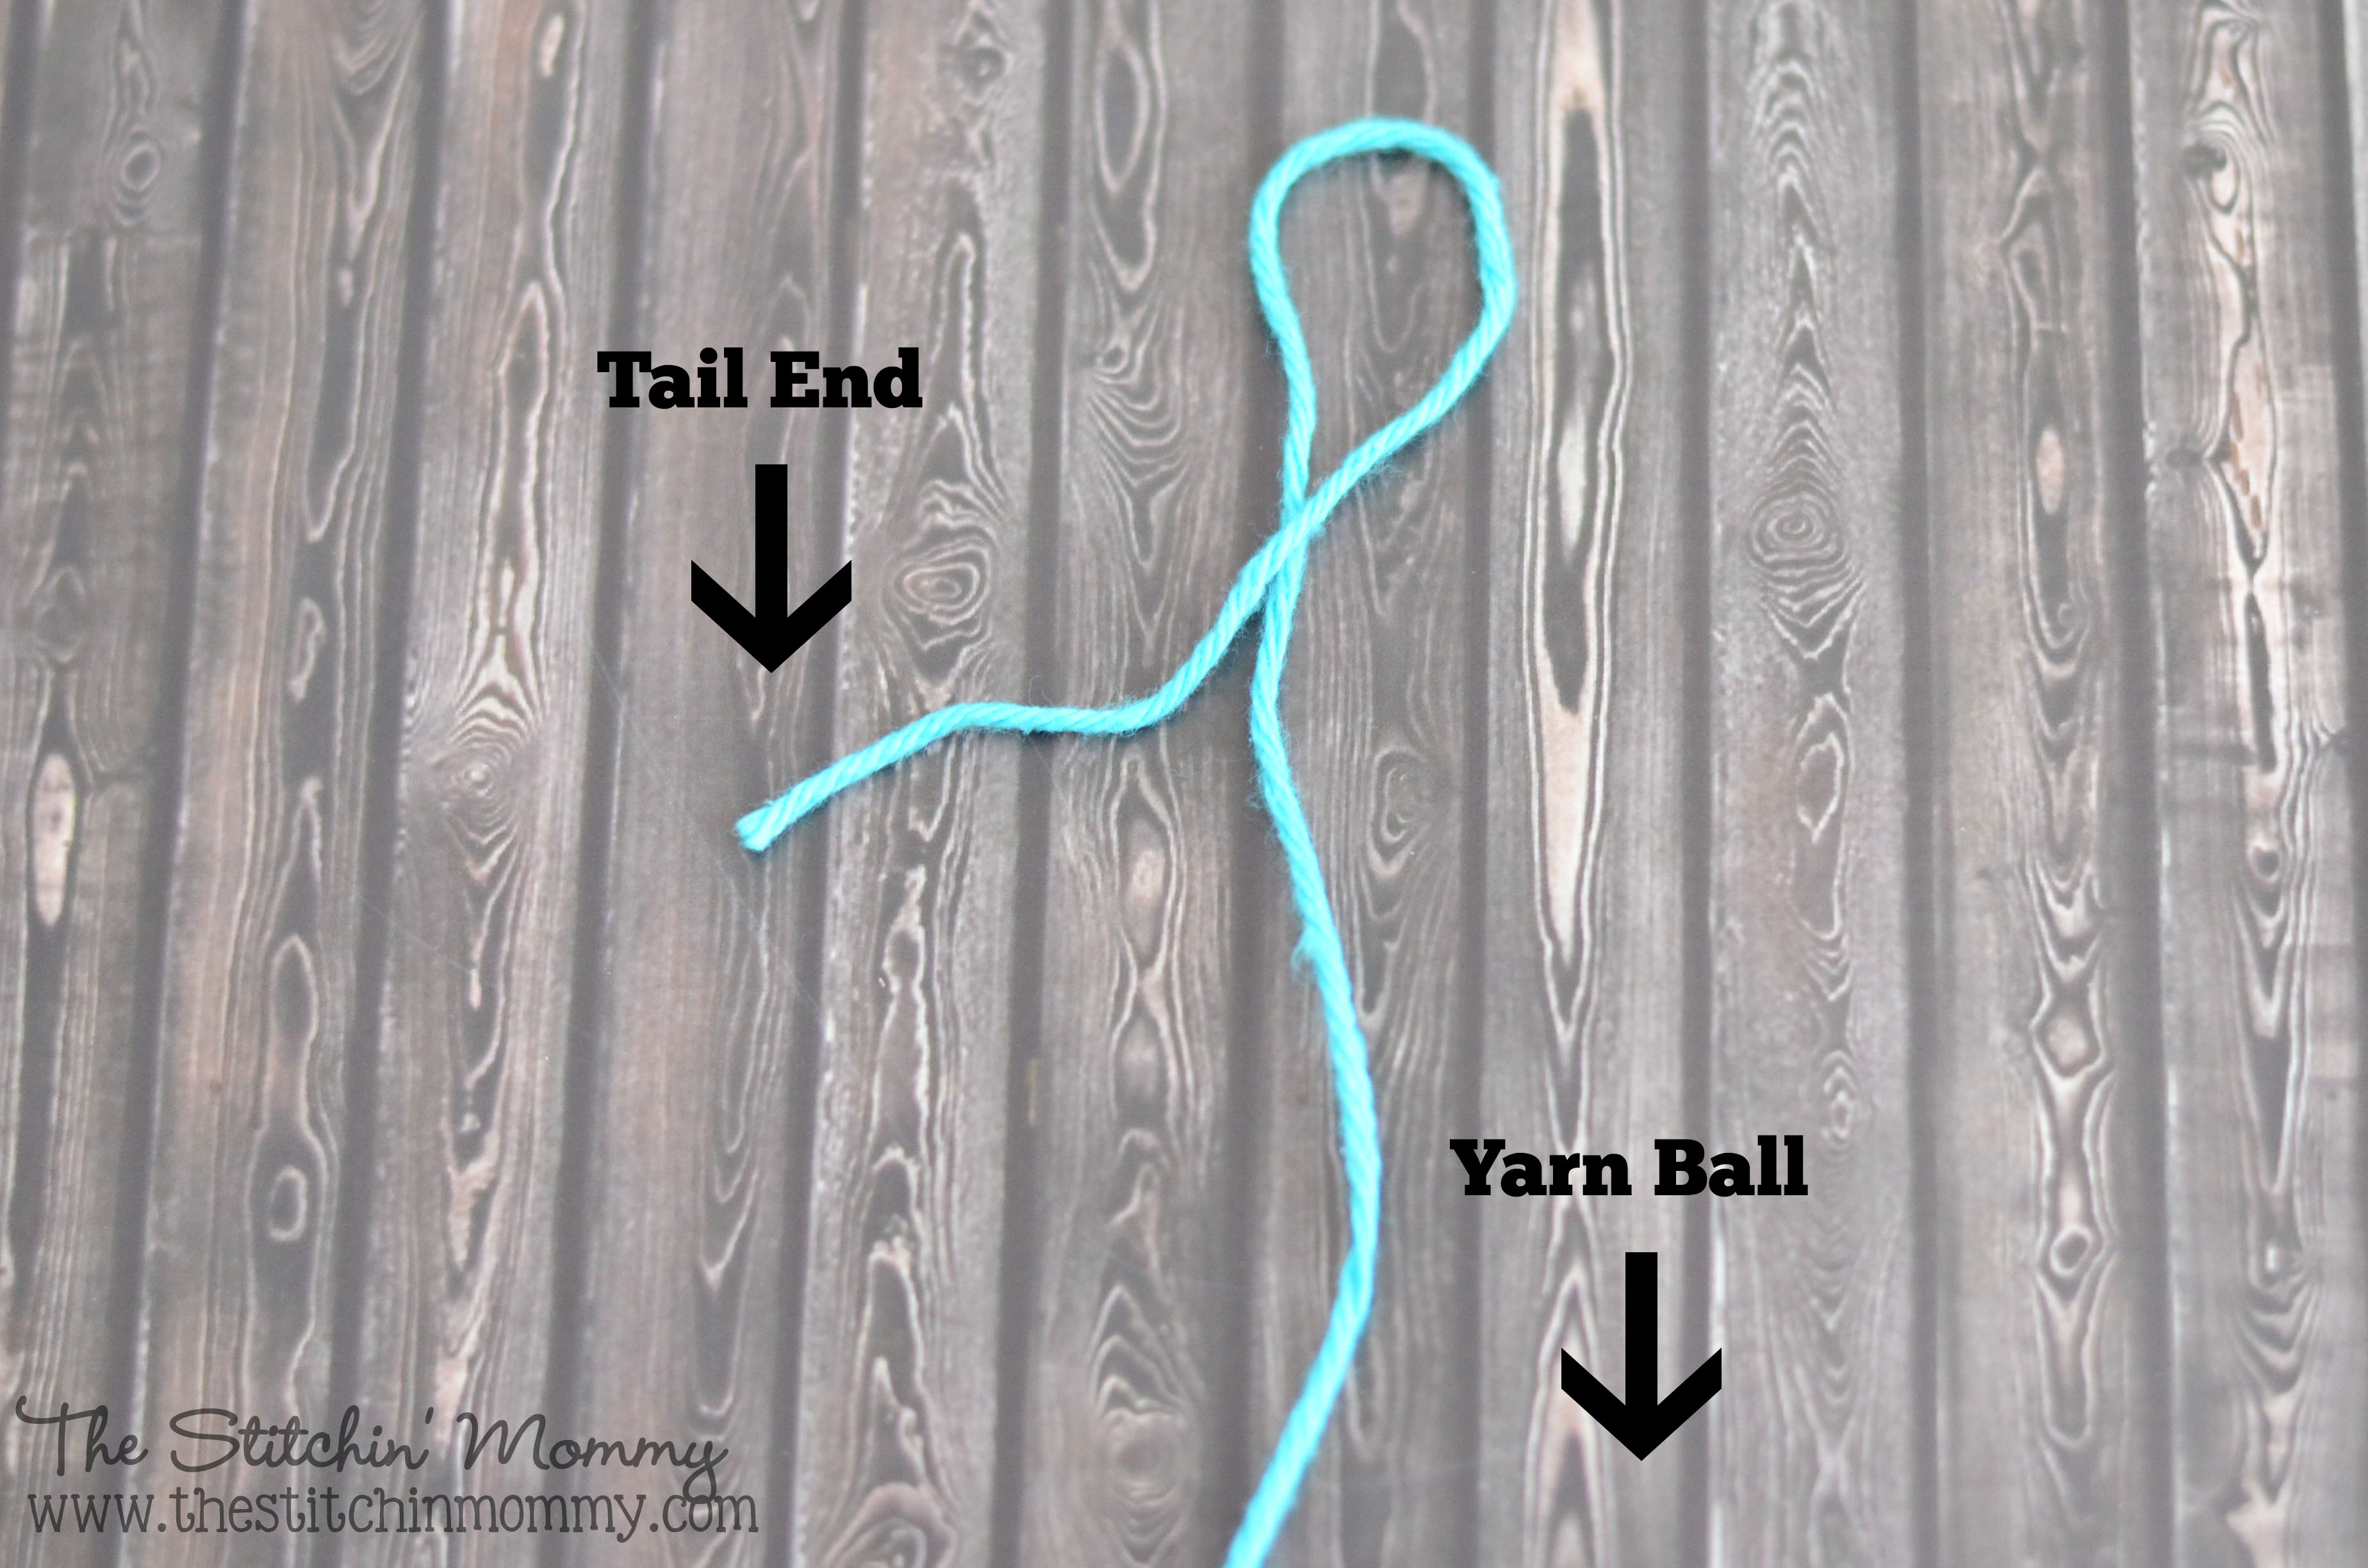 Crochet 101 - Slip Knot and Chain Stitch - The Stitchin Mommy